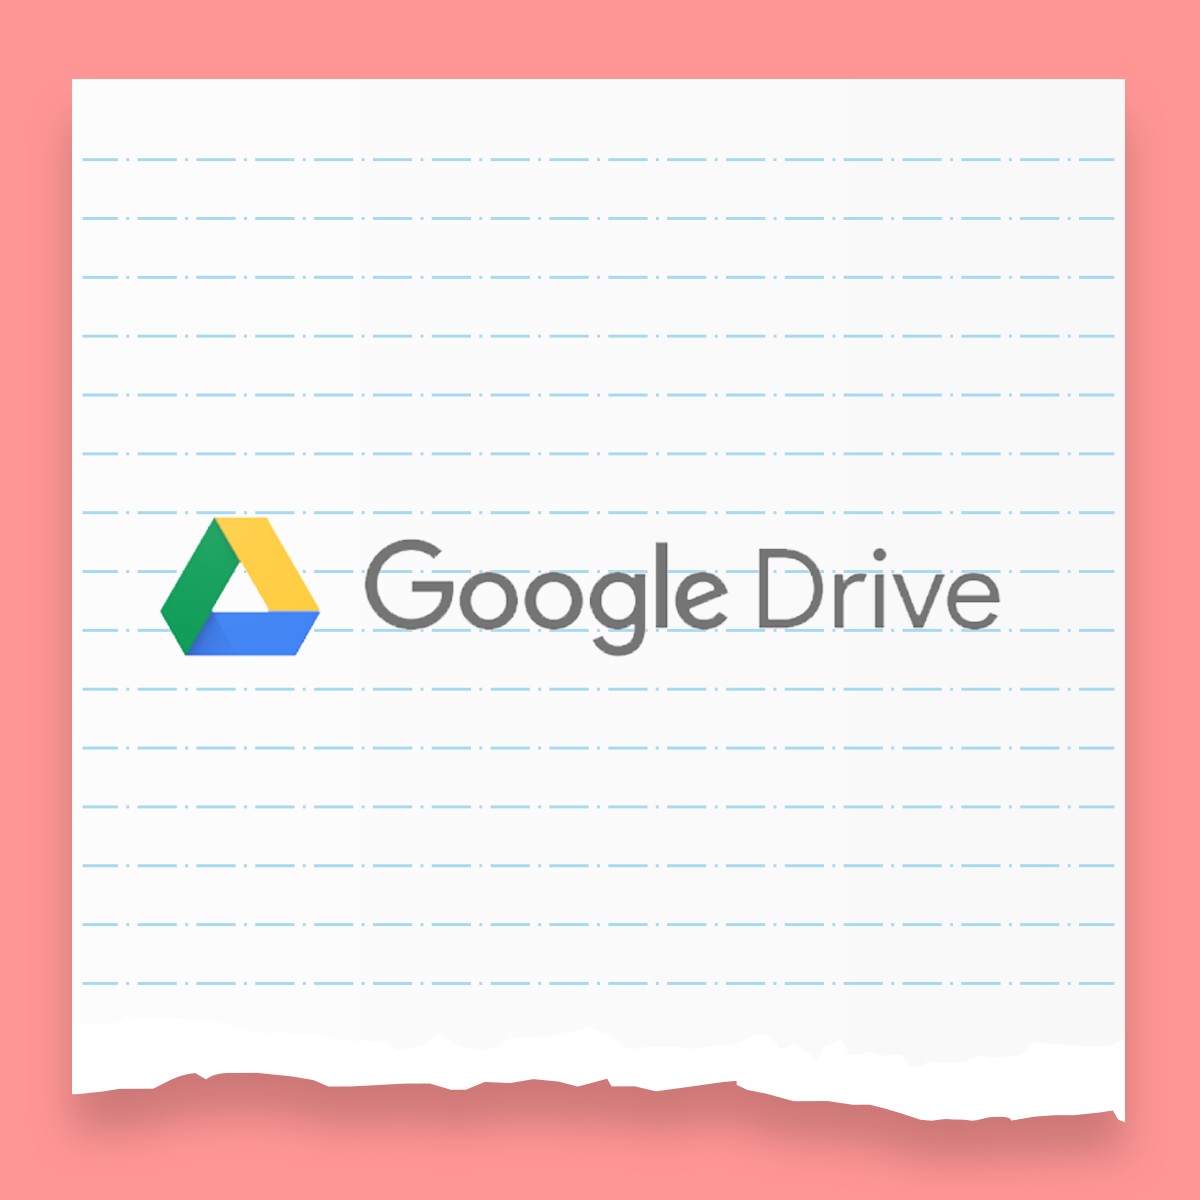 Google Drive used  for: Time Blocking, Writing, Asset Management